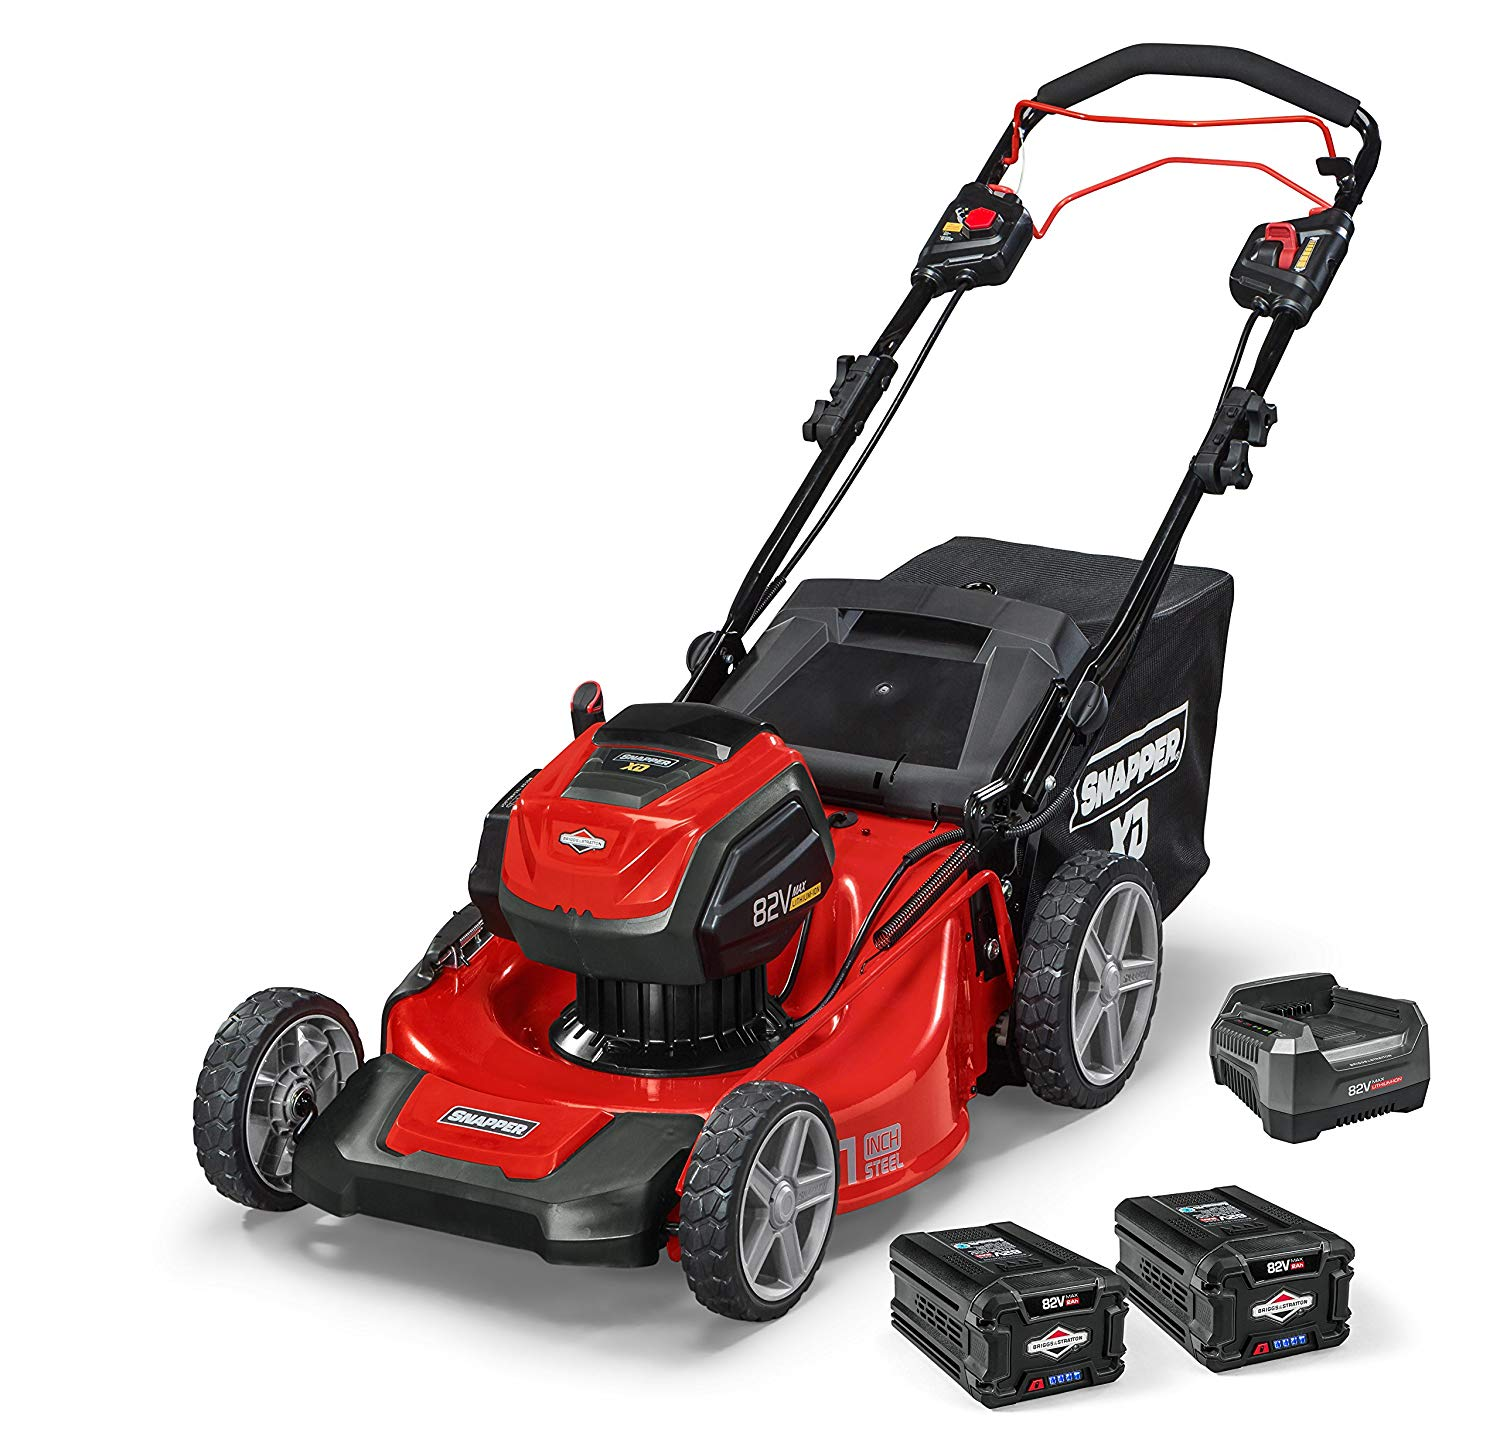 Snapper XD Electric Cordless Self-Propelled Lawnmower review